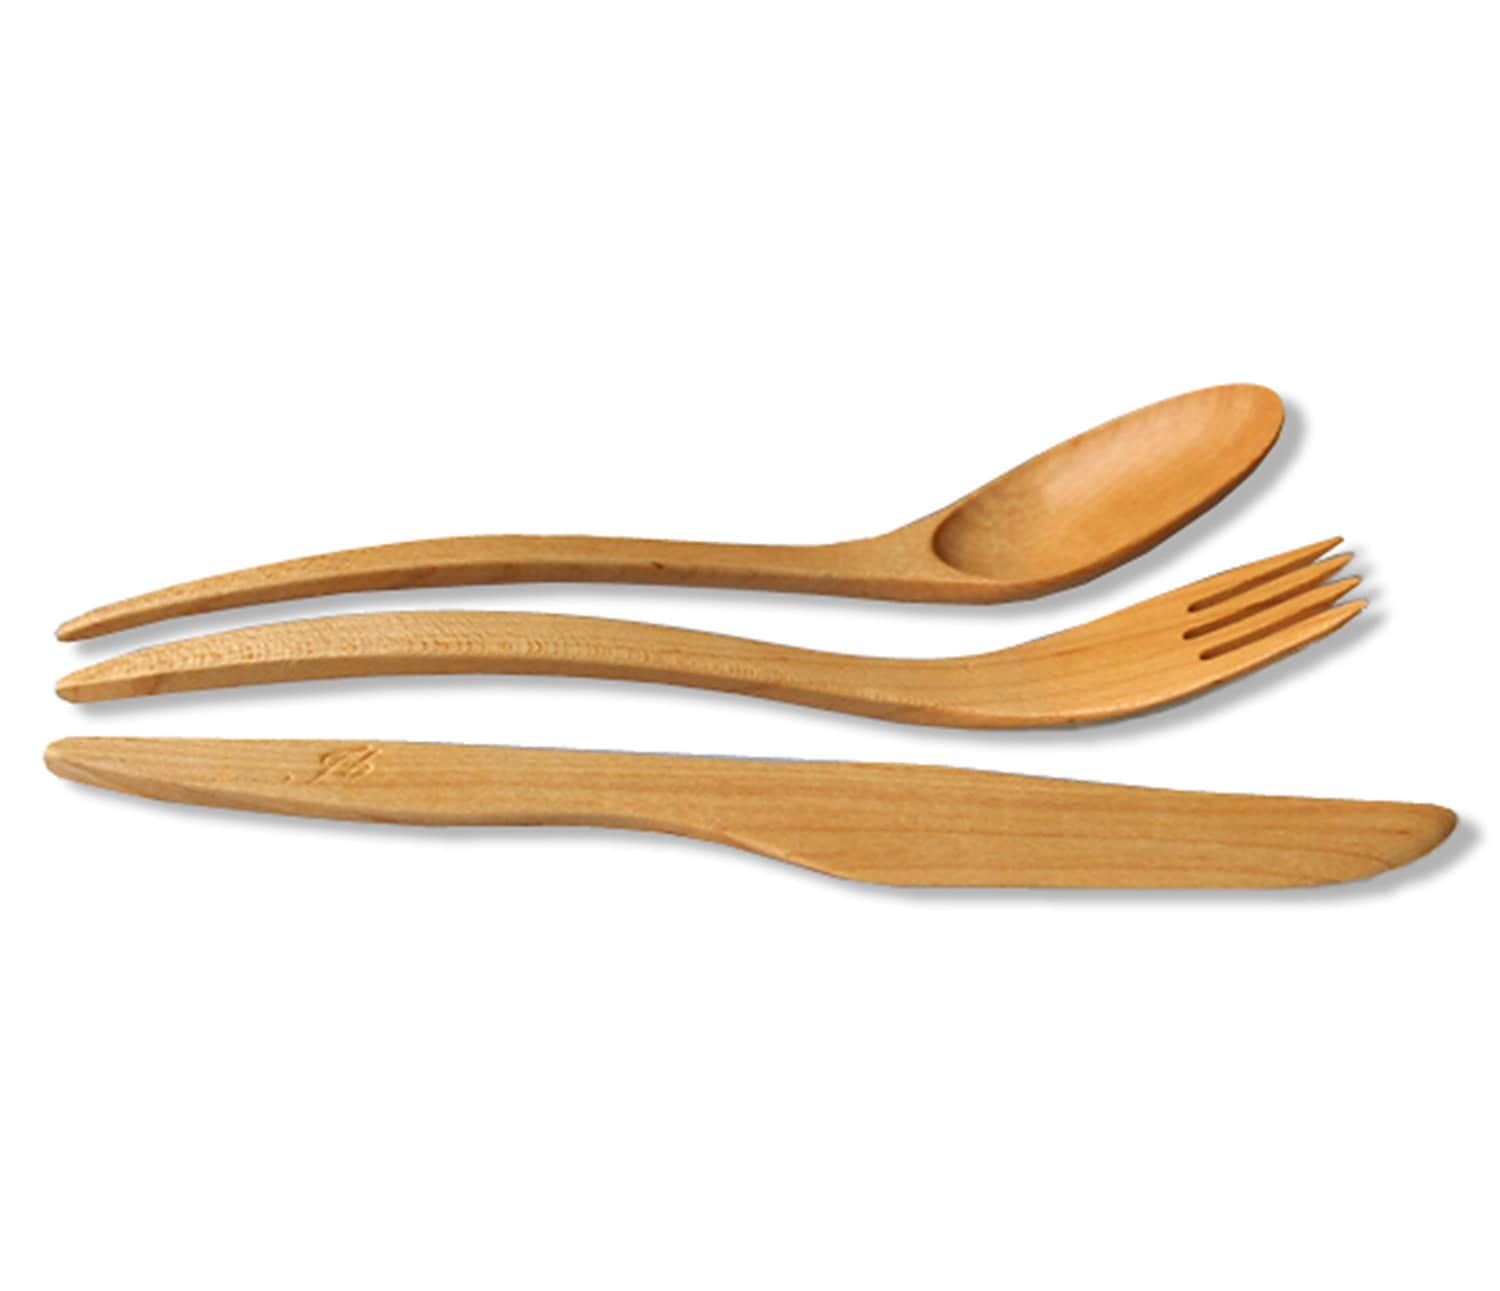 1 SET wooden utensils Maple Wood cutlery utensils of